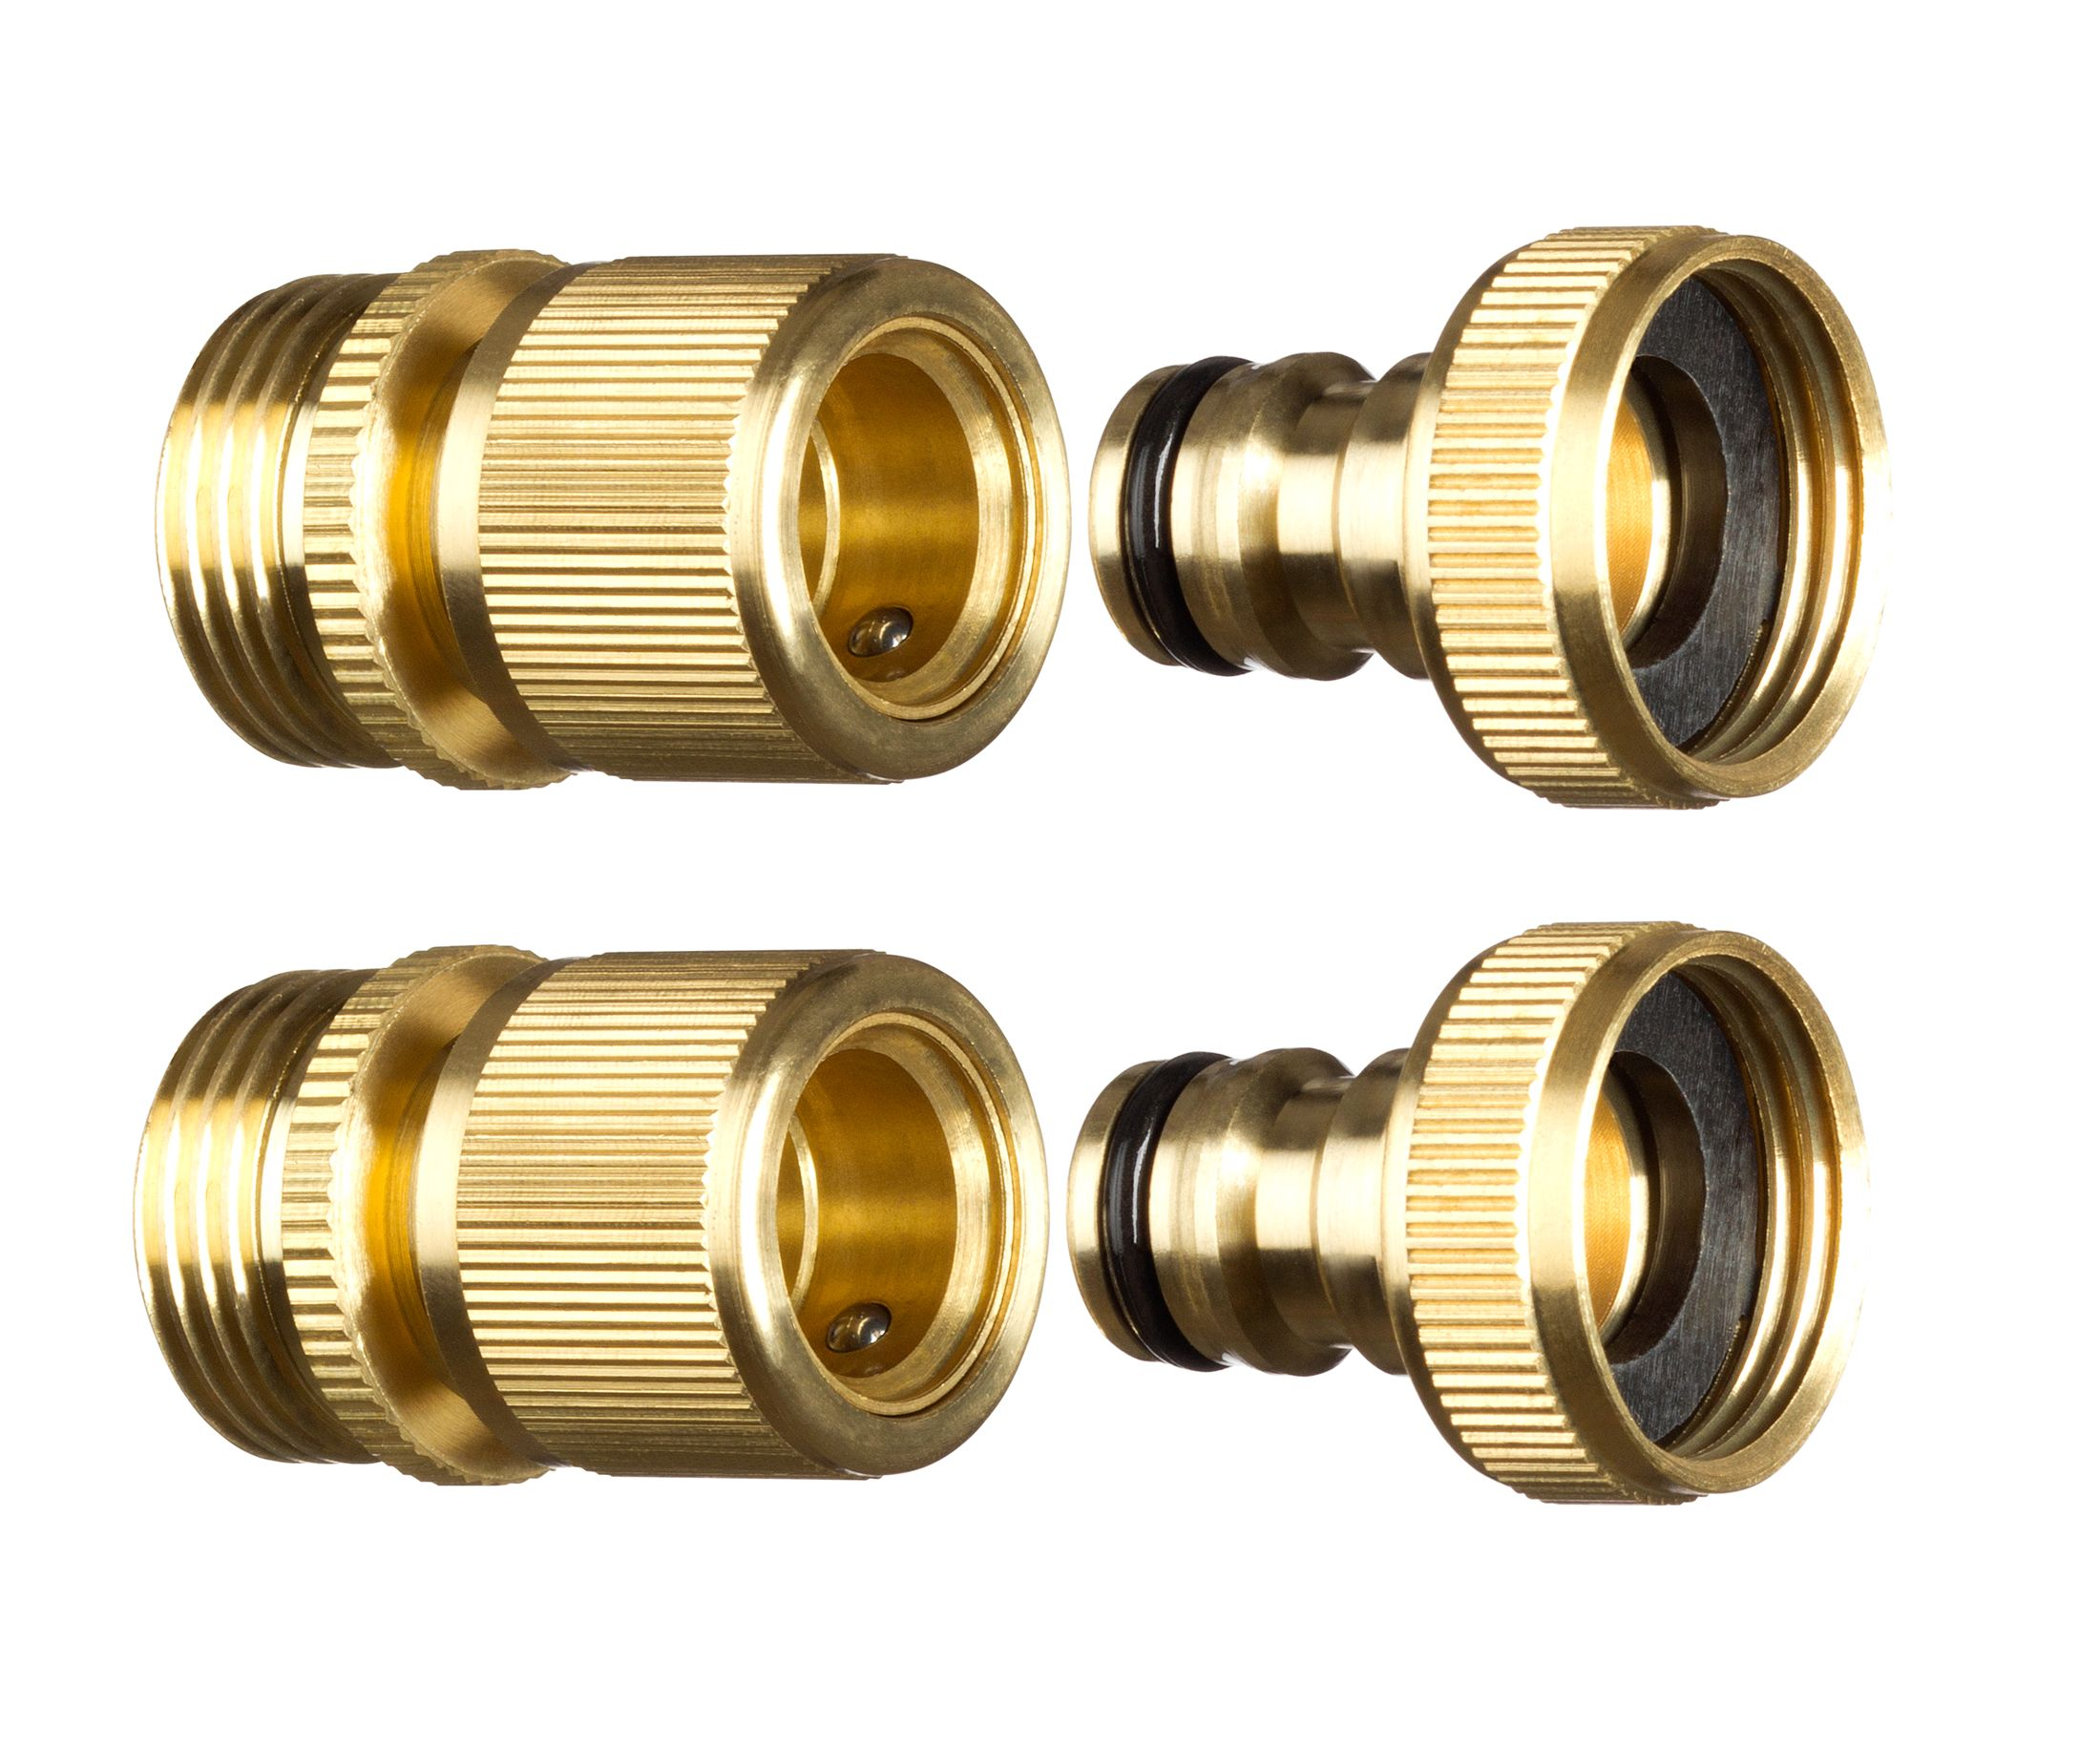 Gorilla Easy Connect 3 4 Npt Brass Quick Connect Garden Hose Fitting 2pc Set Male And Female